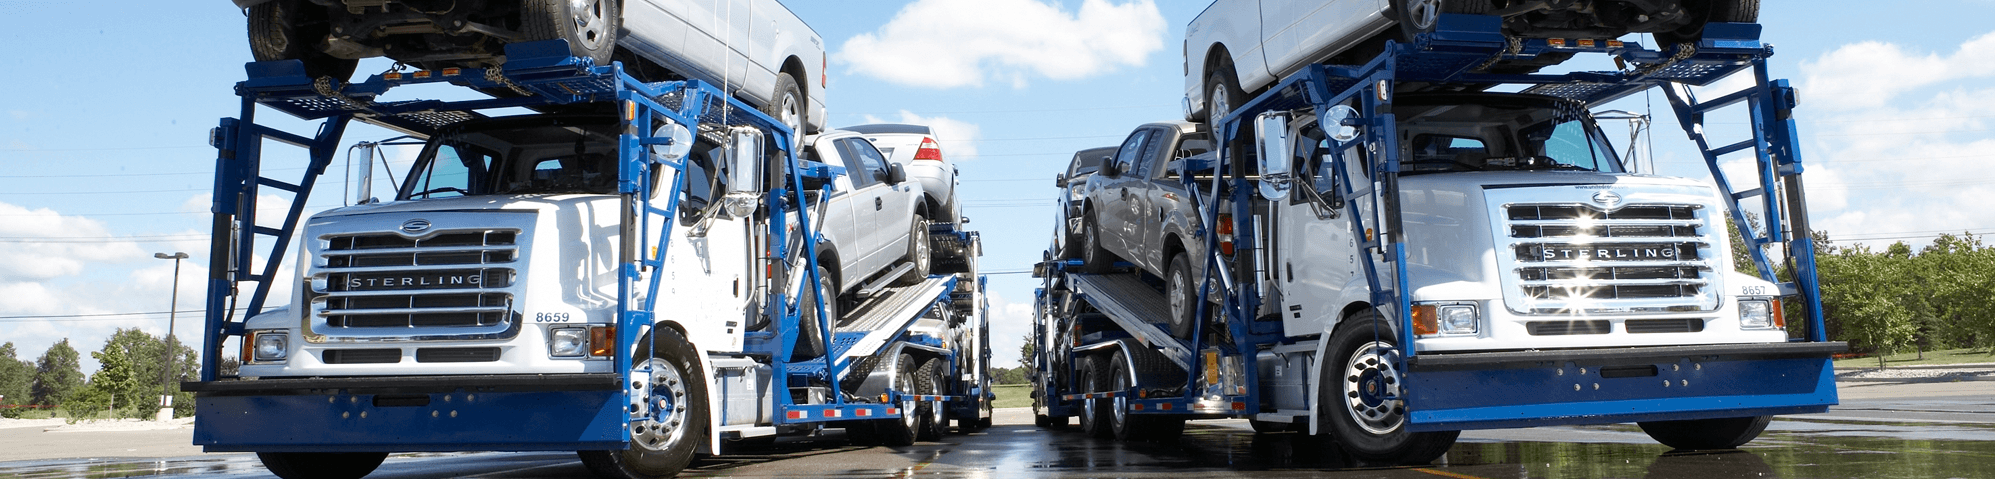 Vehicle Transport Quote Car Transport Services  Aacrossusa